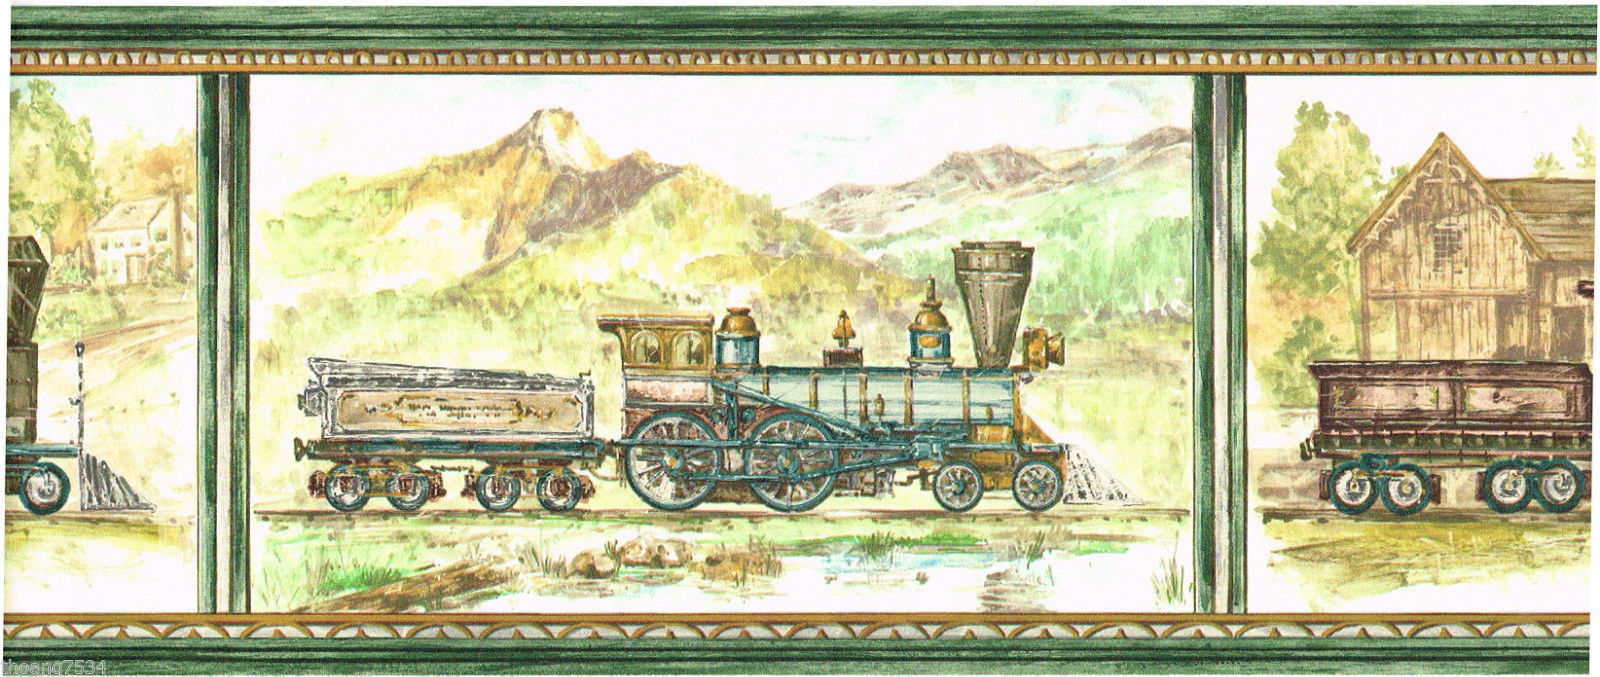 Antique Locomotive Steam Engine Train Scenic Green Wallpaper Border 1600x677